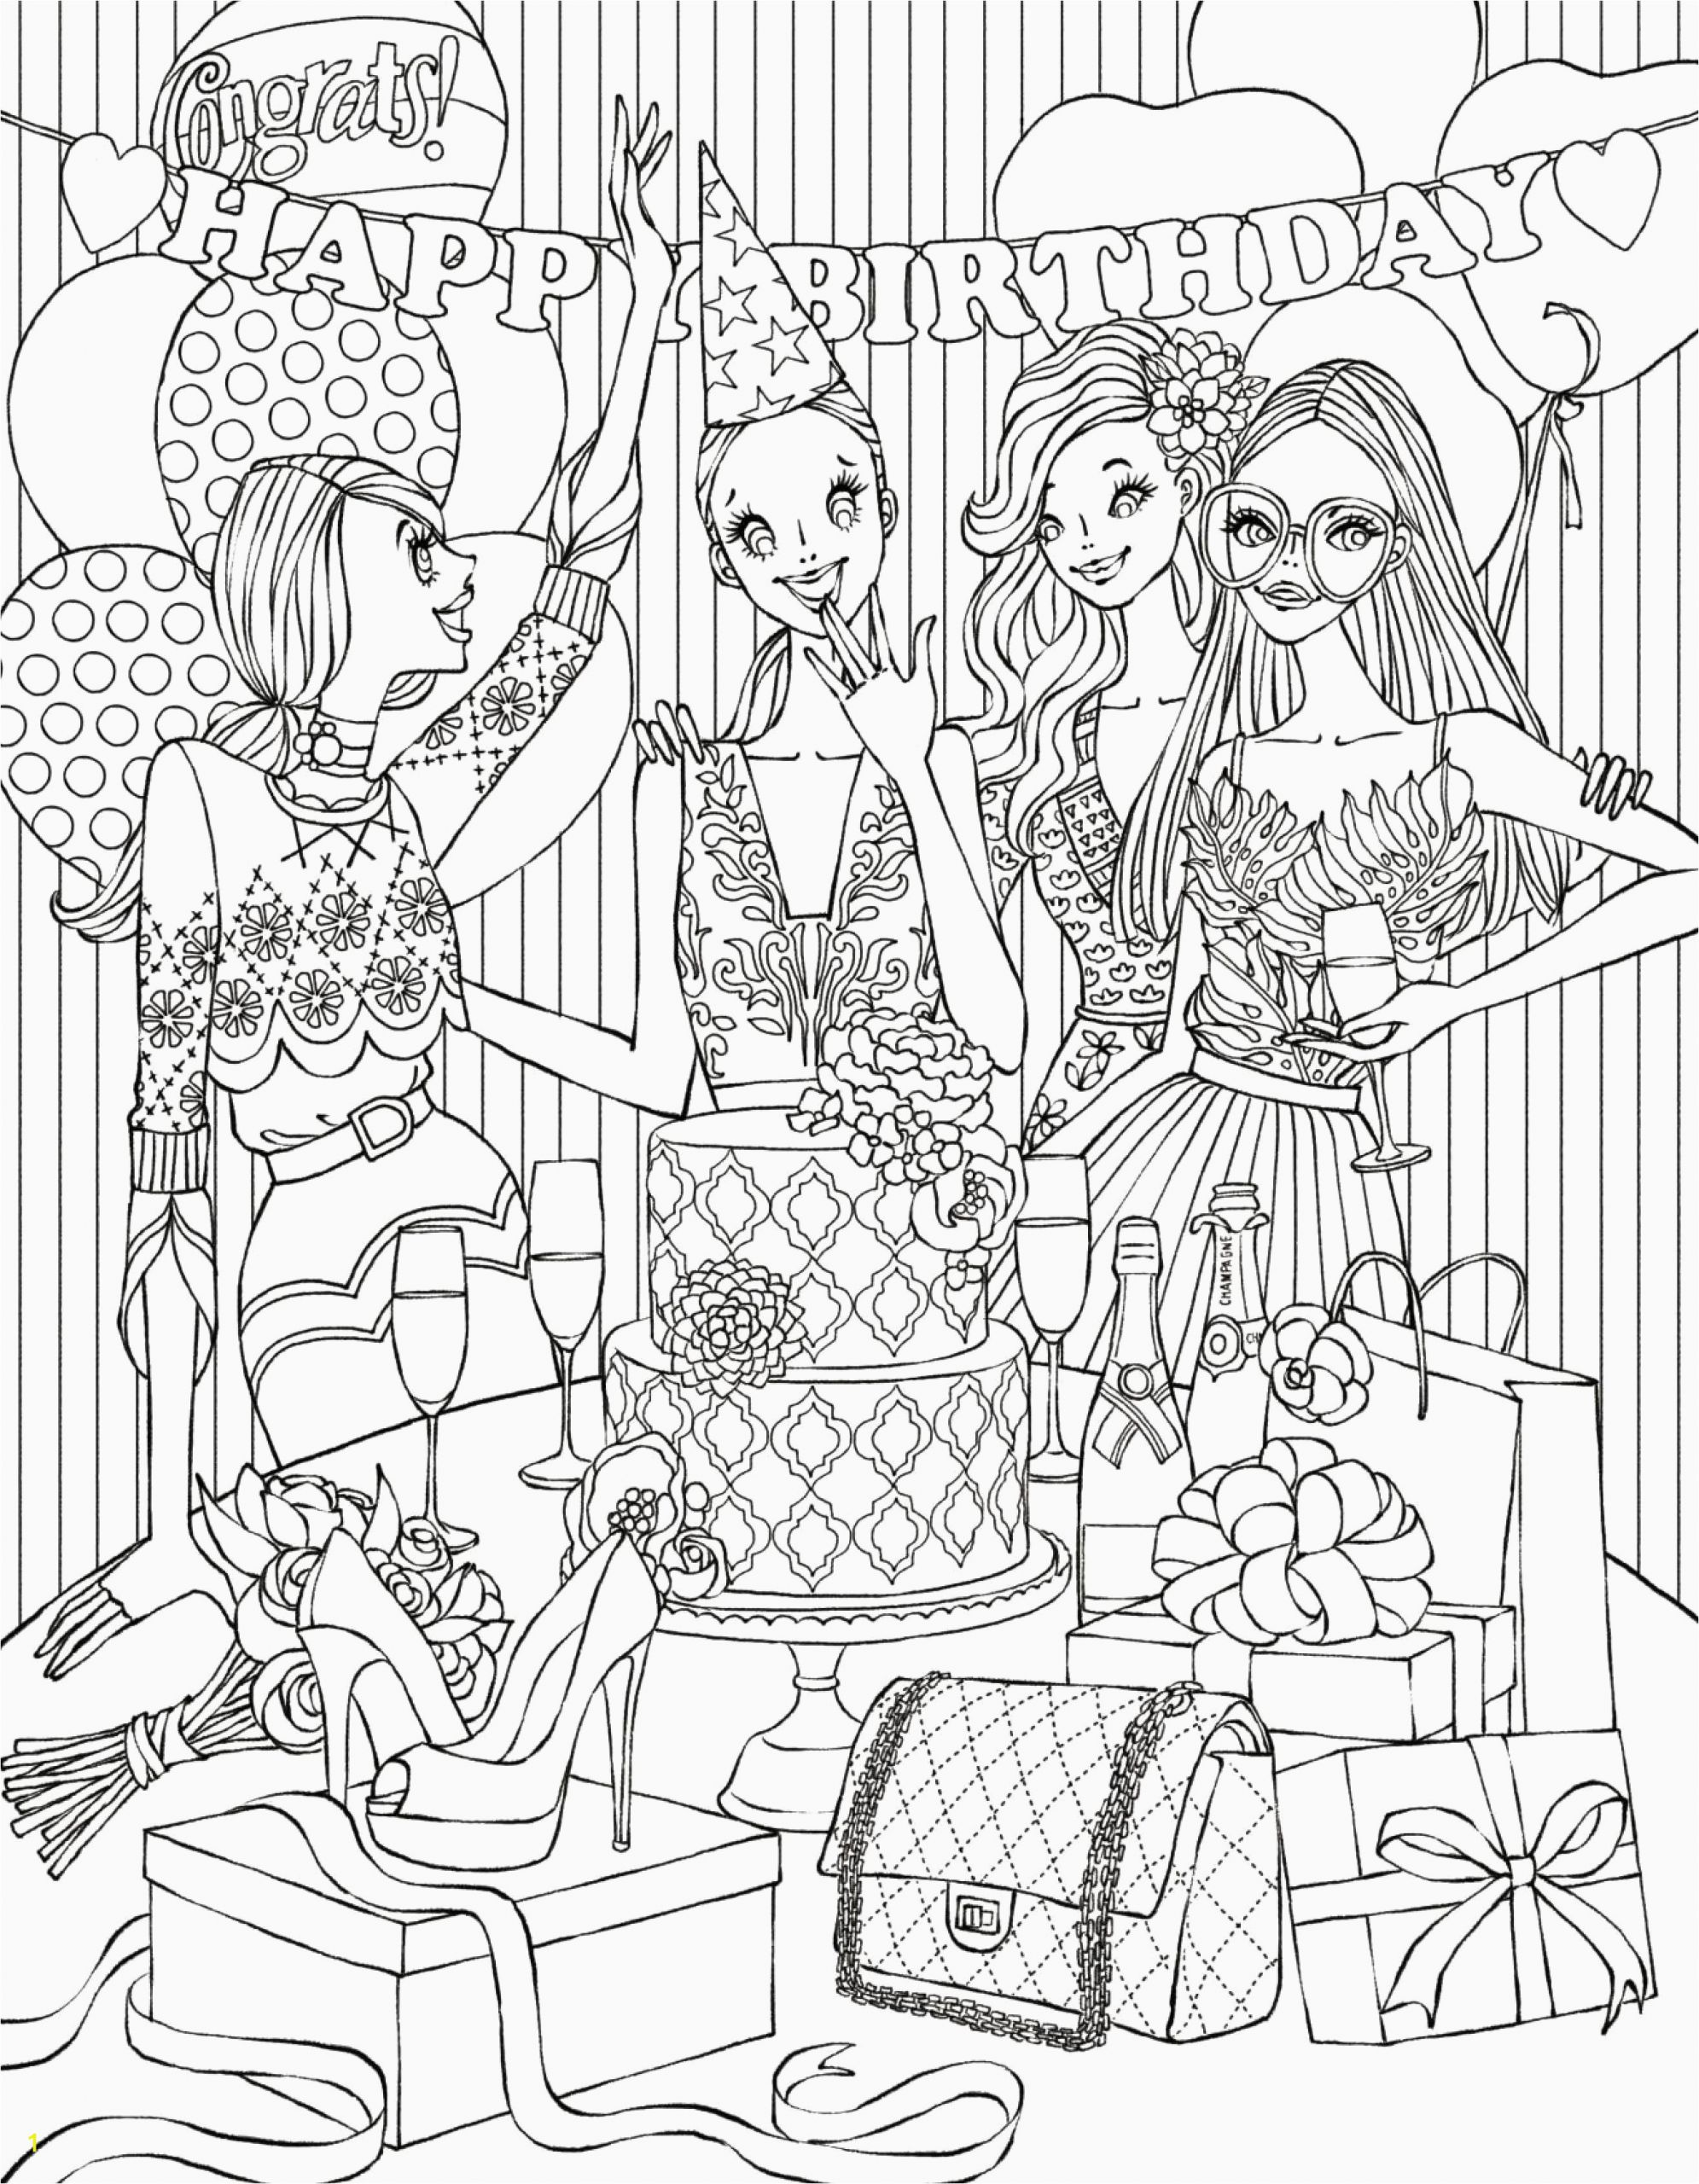 christmas coloring pages free christmas color pages unique color pages best sol r coloring pages best 0d 0d65a39f6ae212